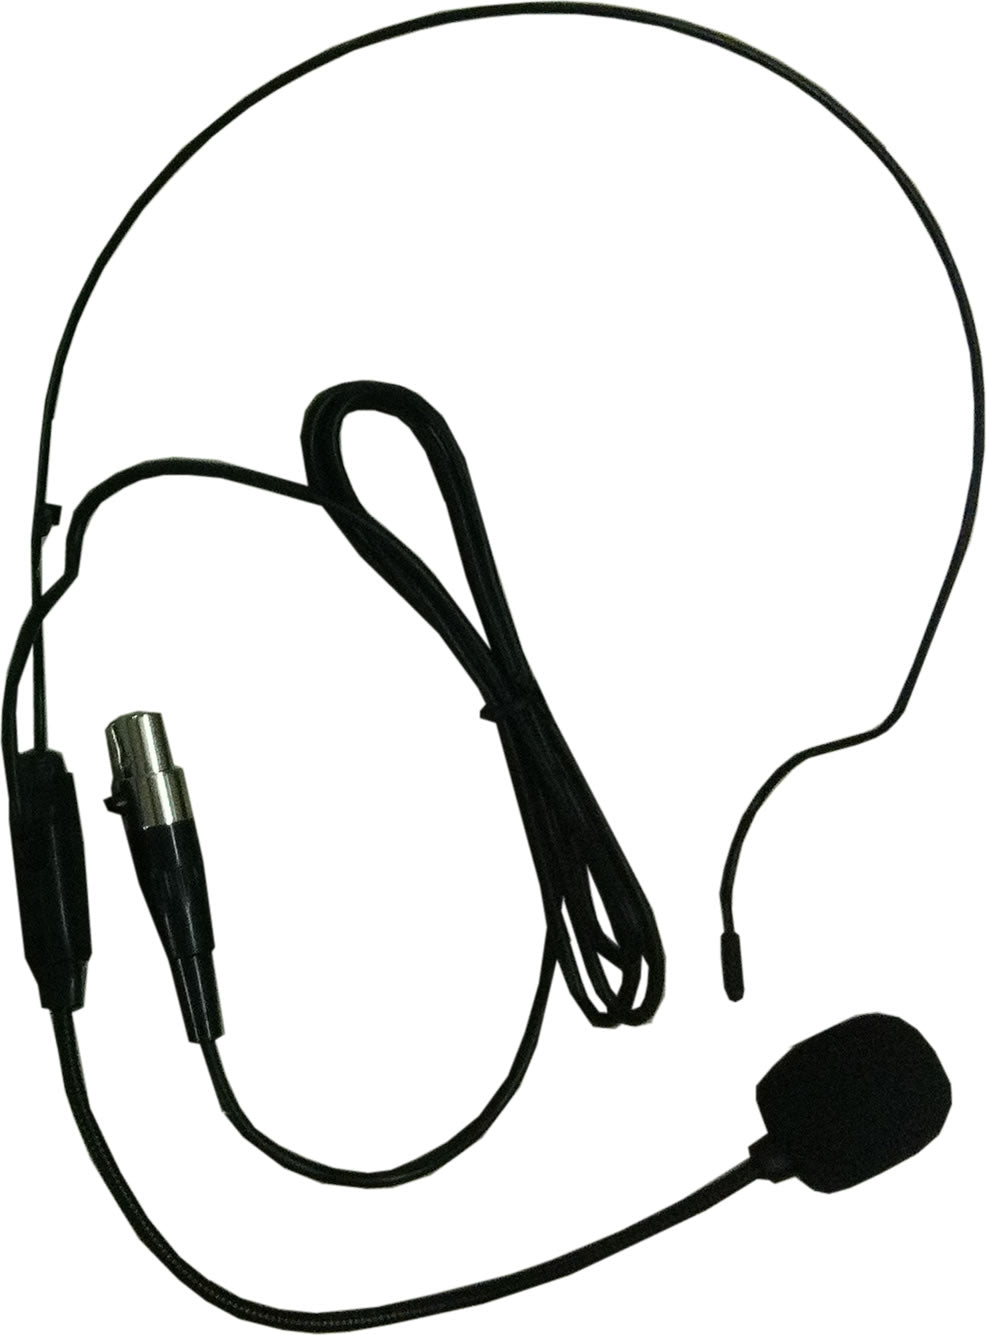 96-0200-01 Unidirectional Headset Microphone - Black